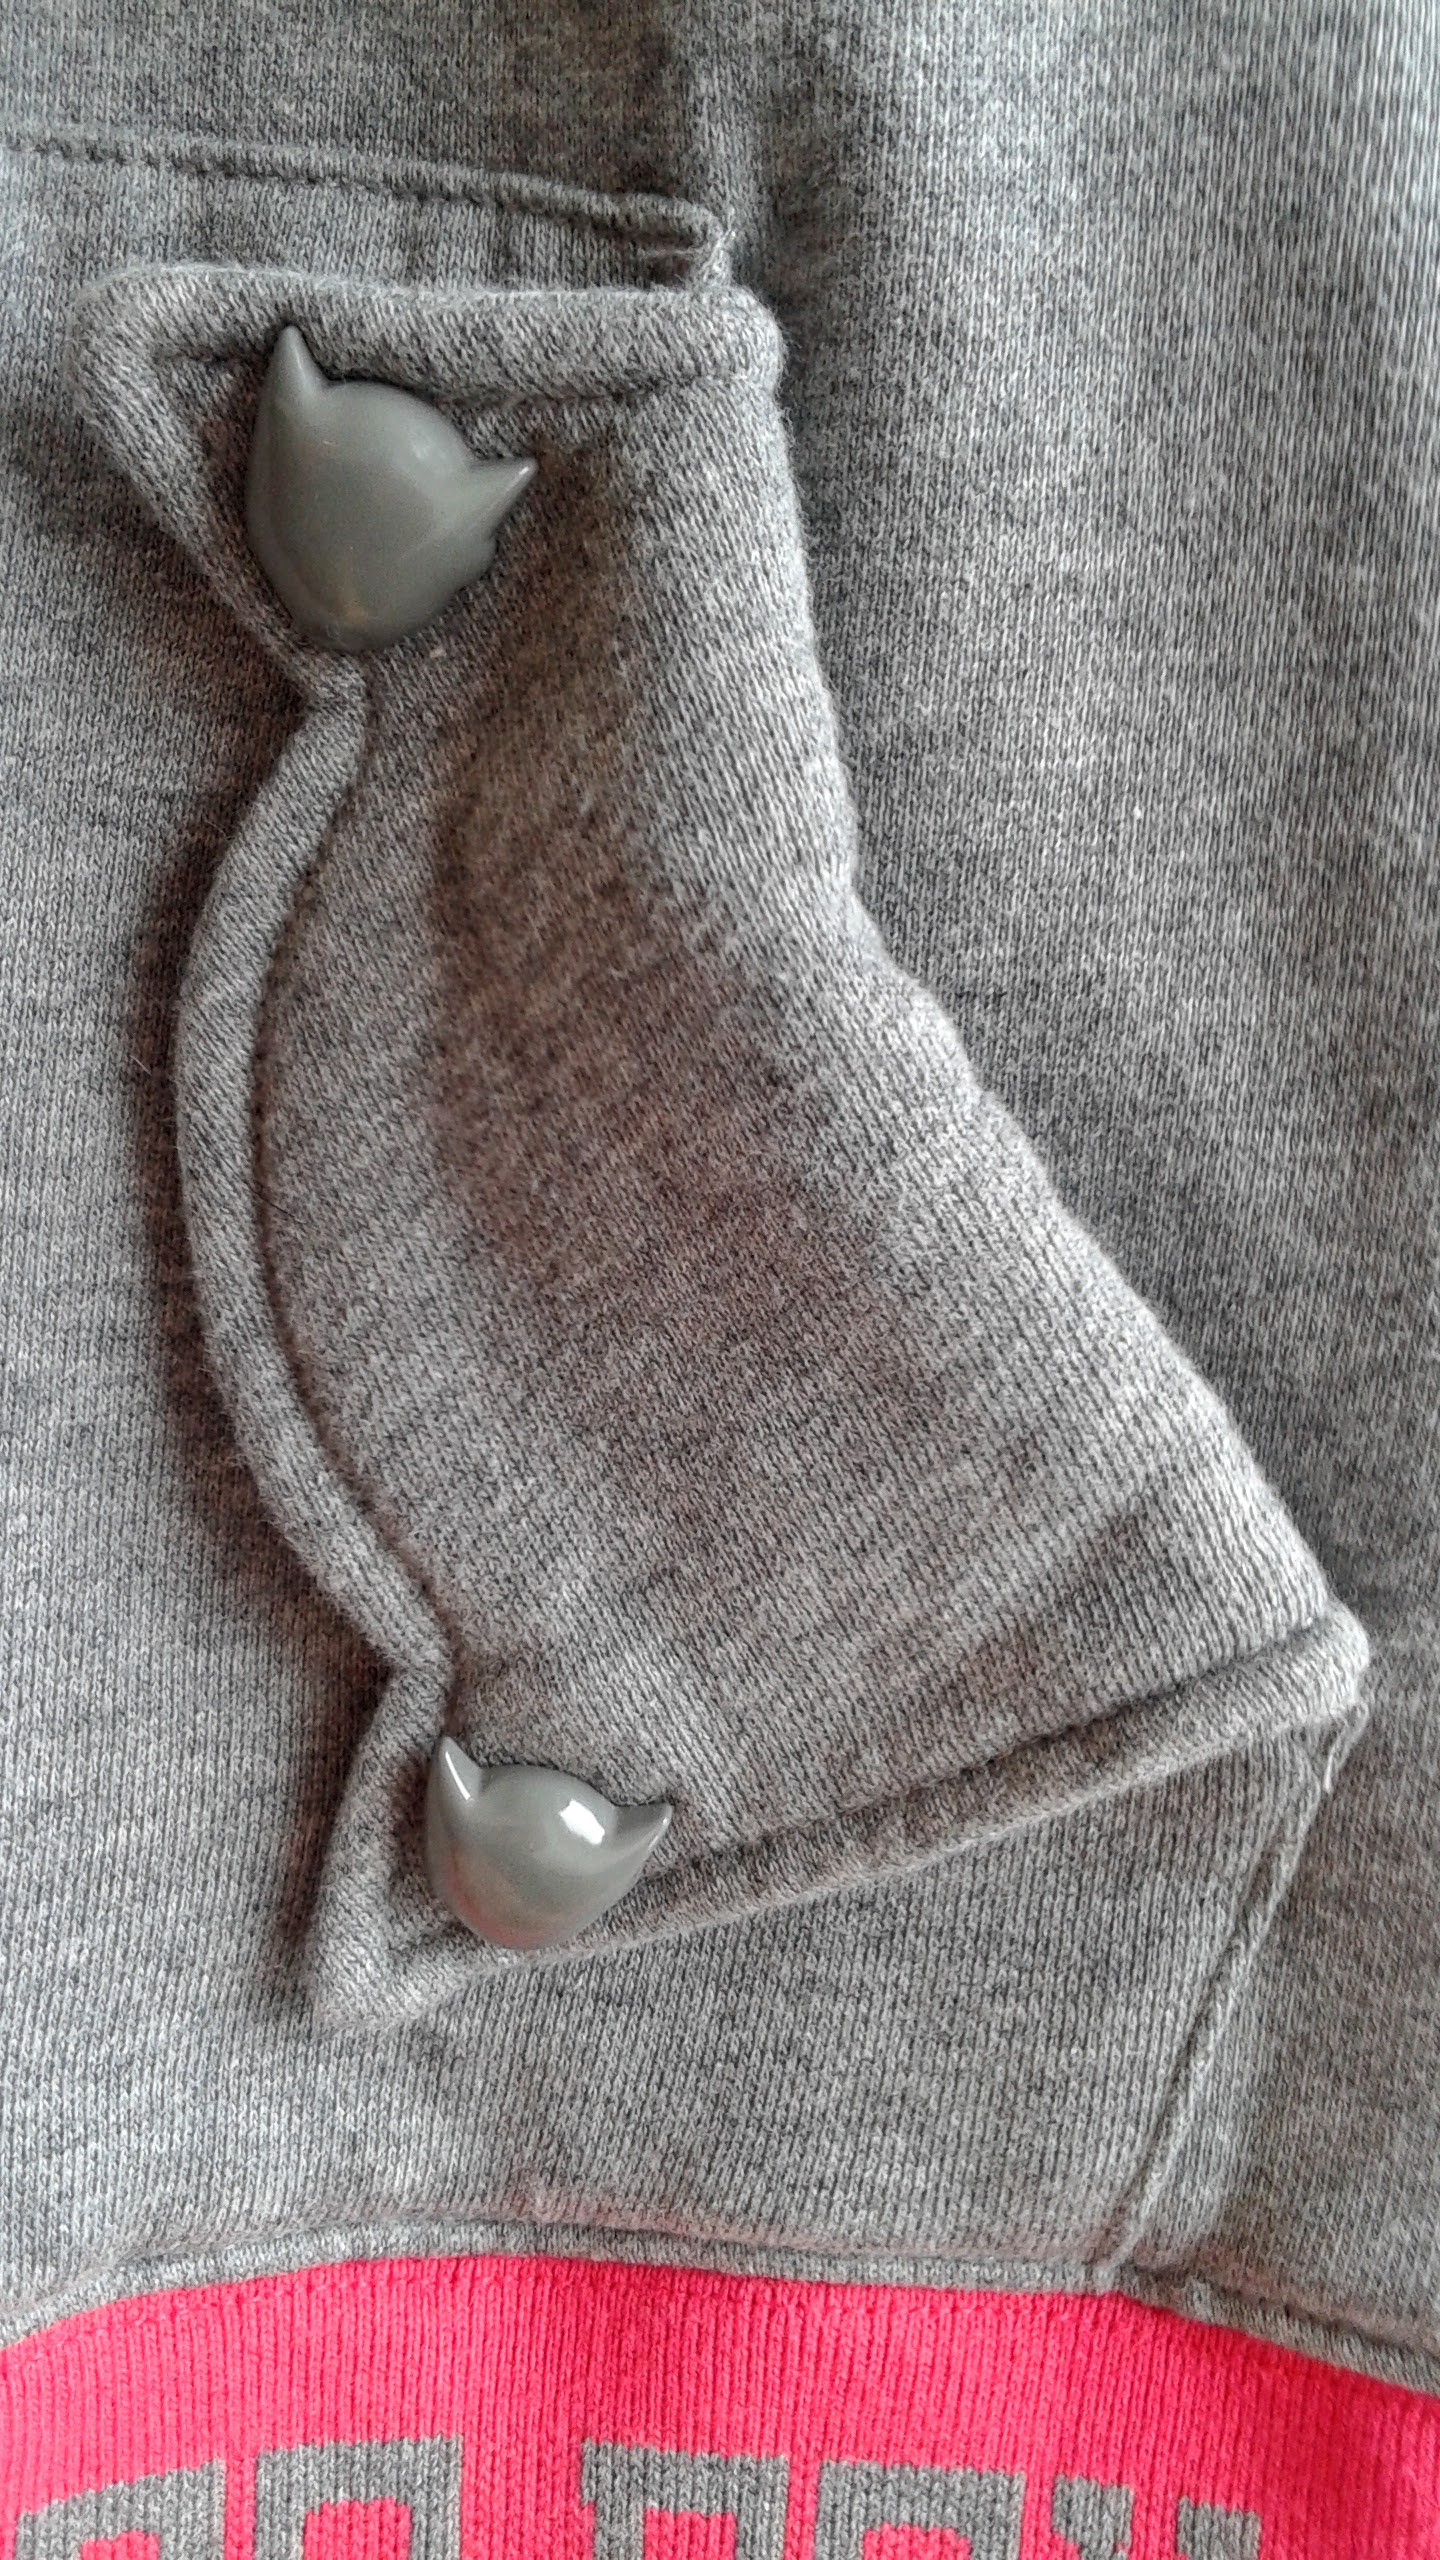 ...and Astro-Boy head detailing on the pockets!